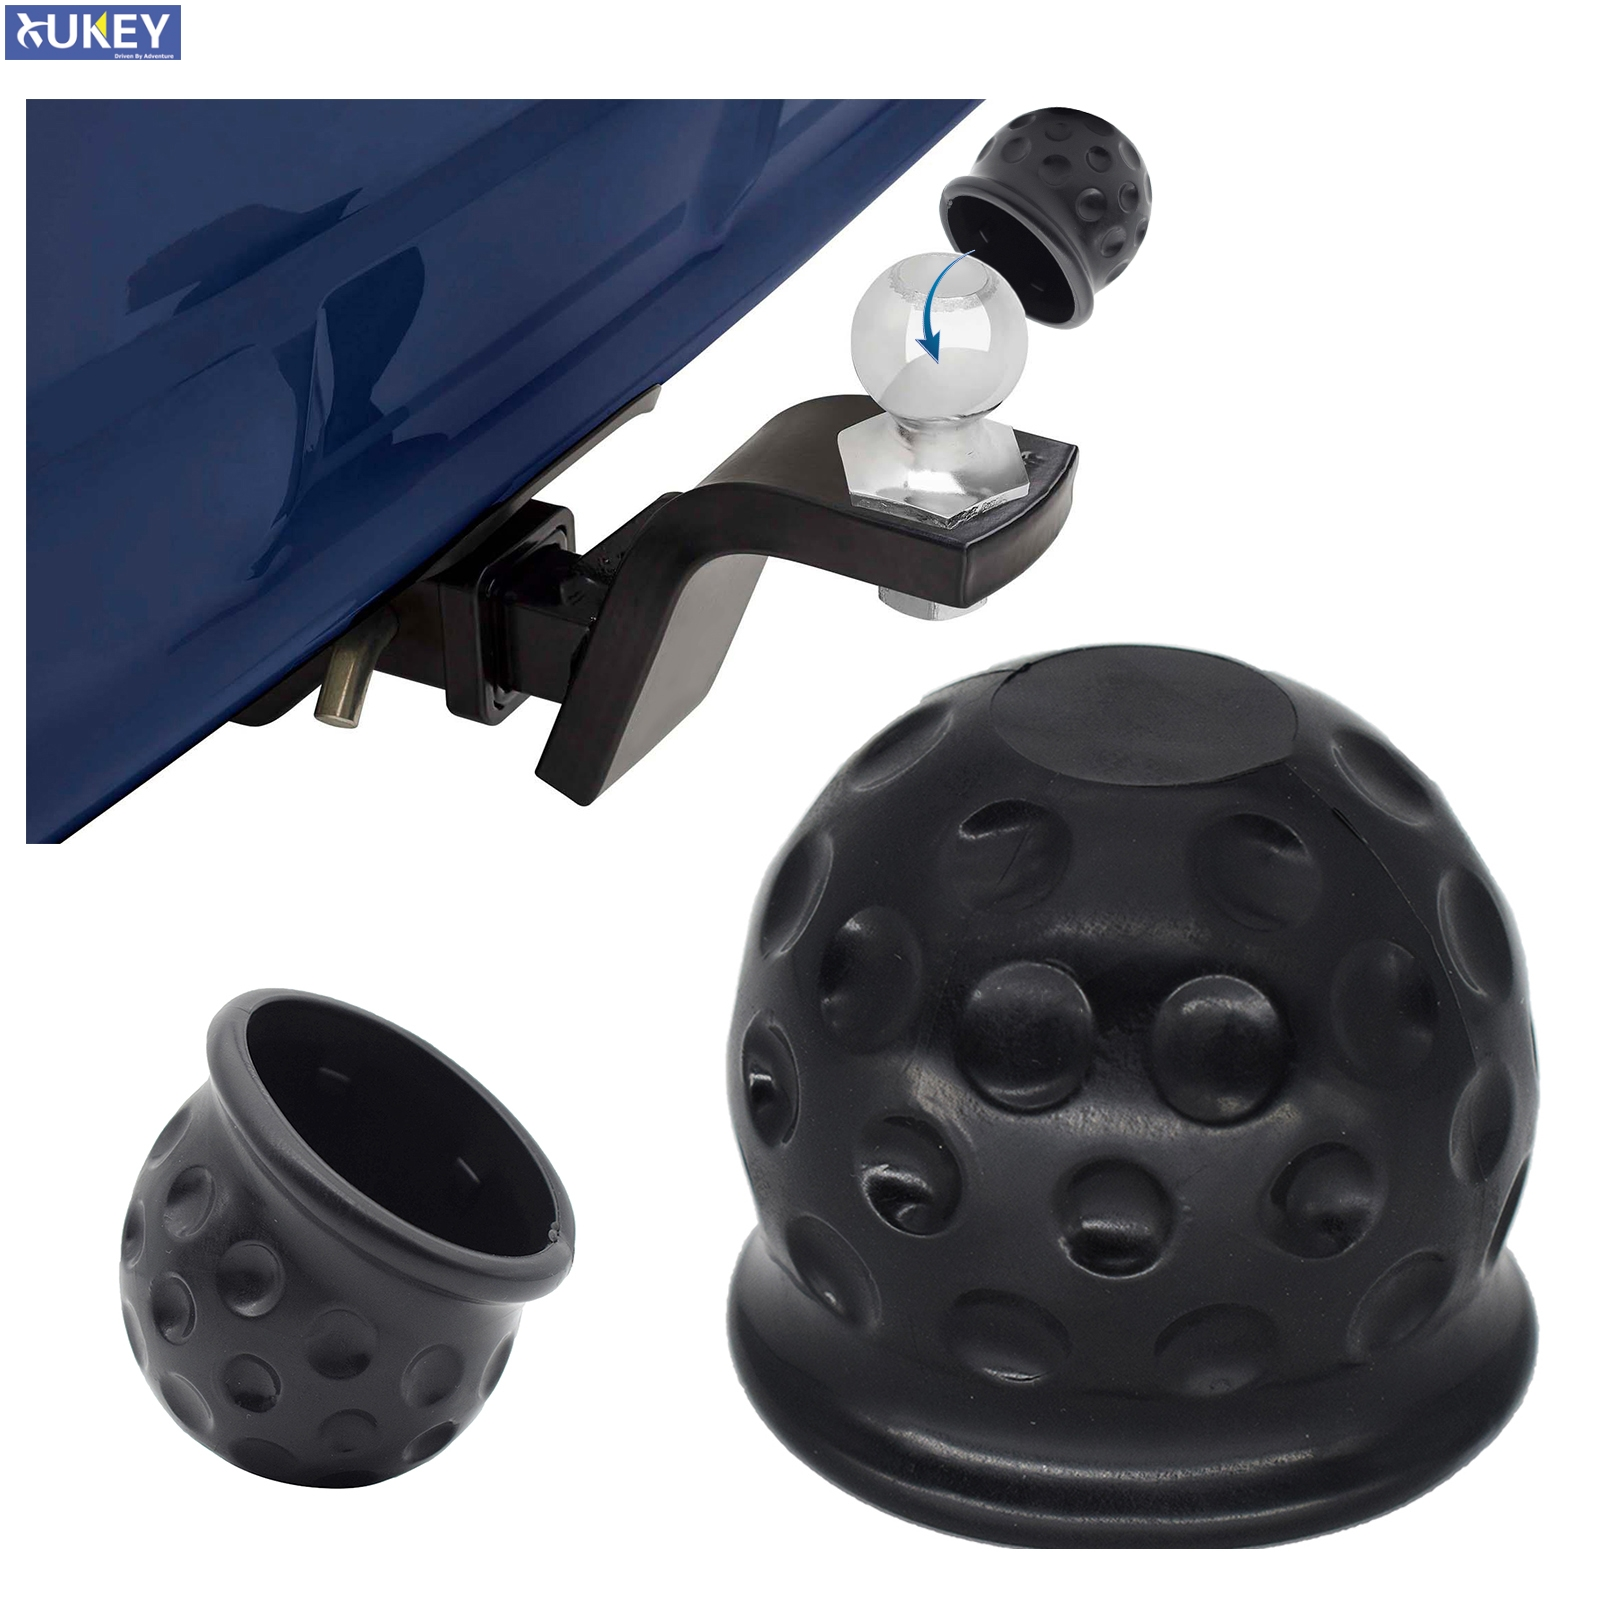 Tow Bar Cap Towing Hitch Trailer Ball Cover Caravan Truck Trailer Towball Protect 50Mm Rubber Black Universal Car Accessories